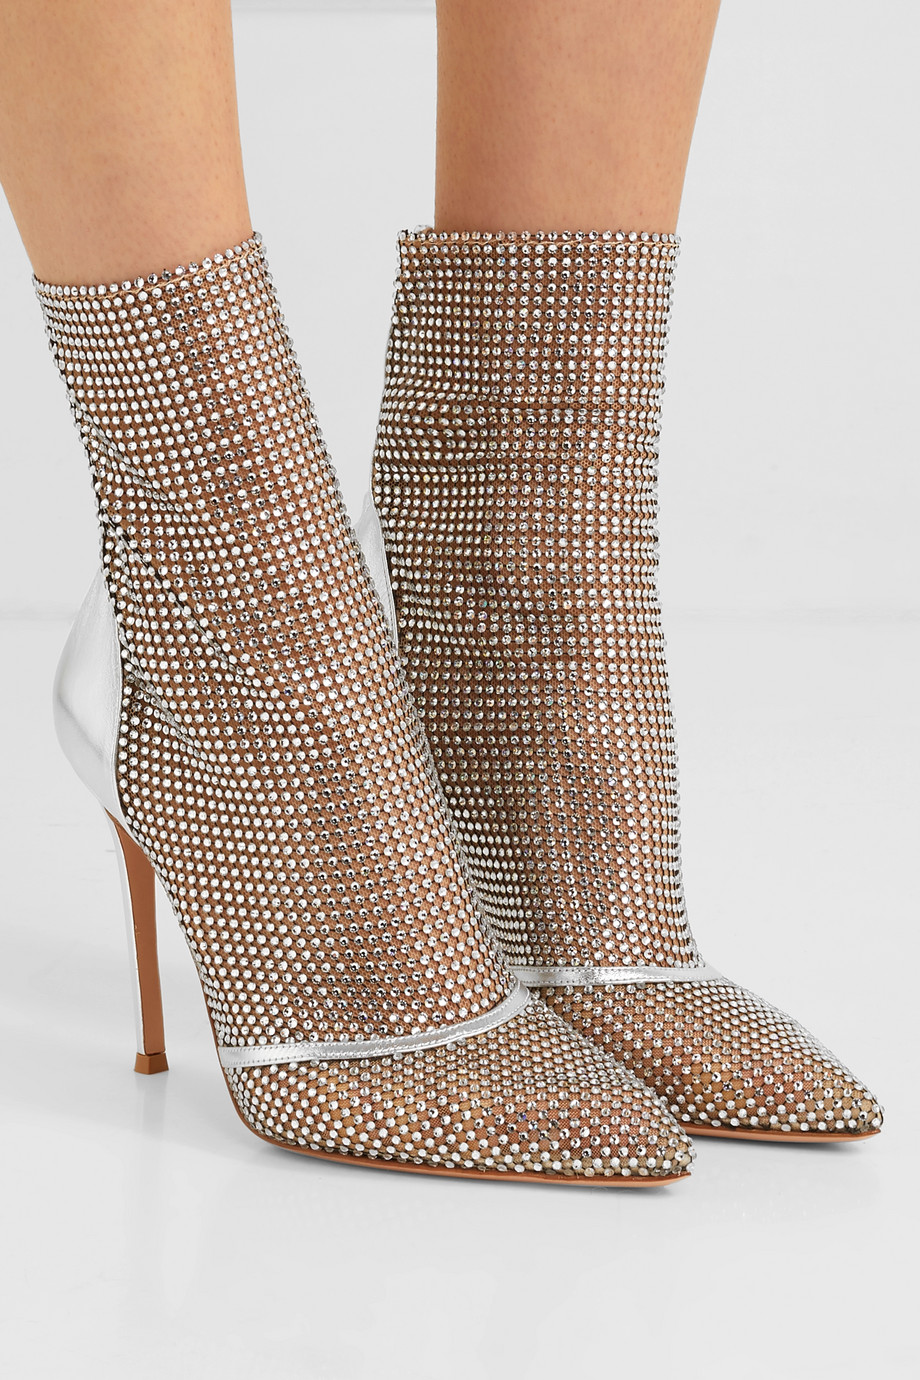 Gianvito Rossi 105 crystal-embellished metallic leather and mesh ankle boots